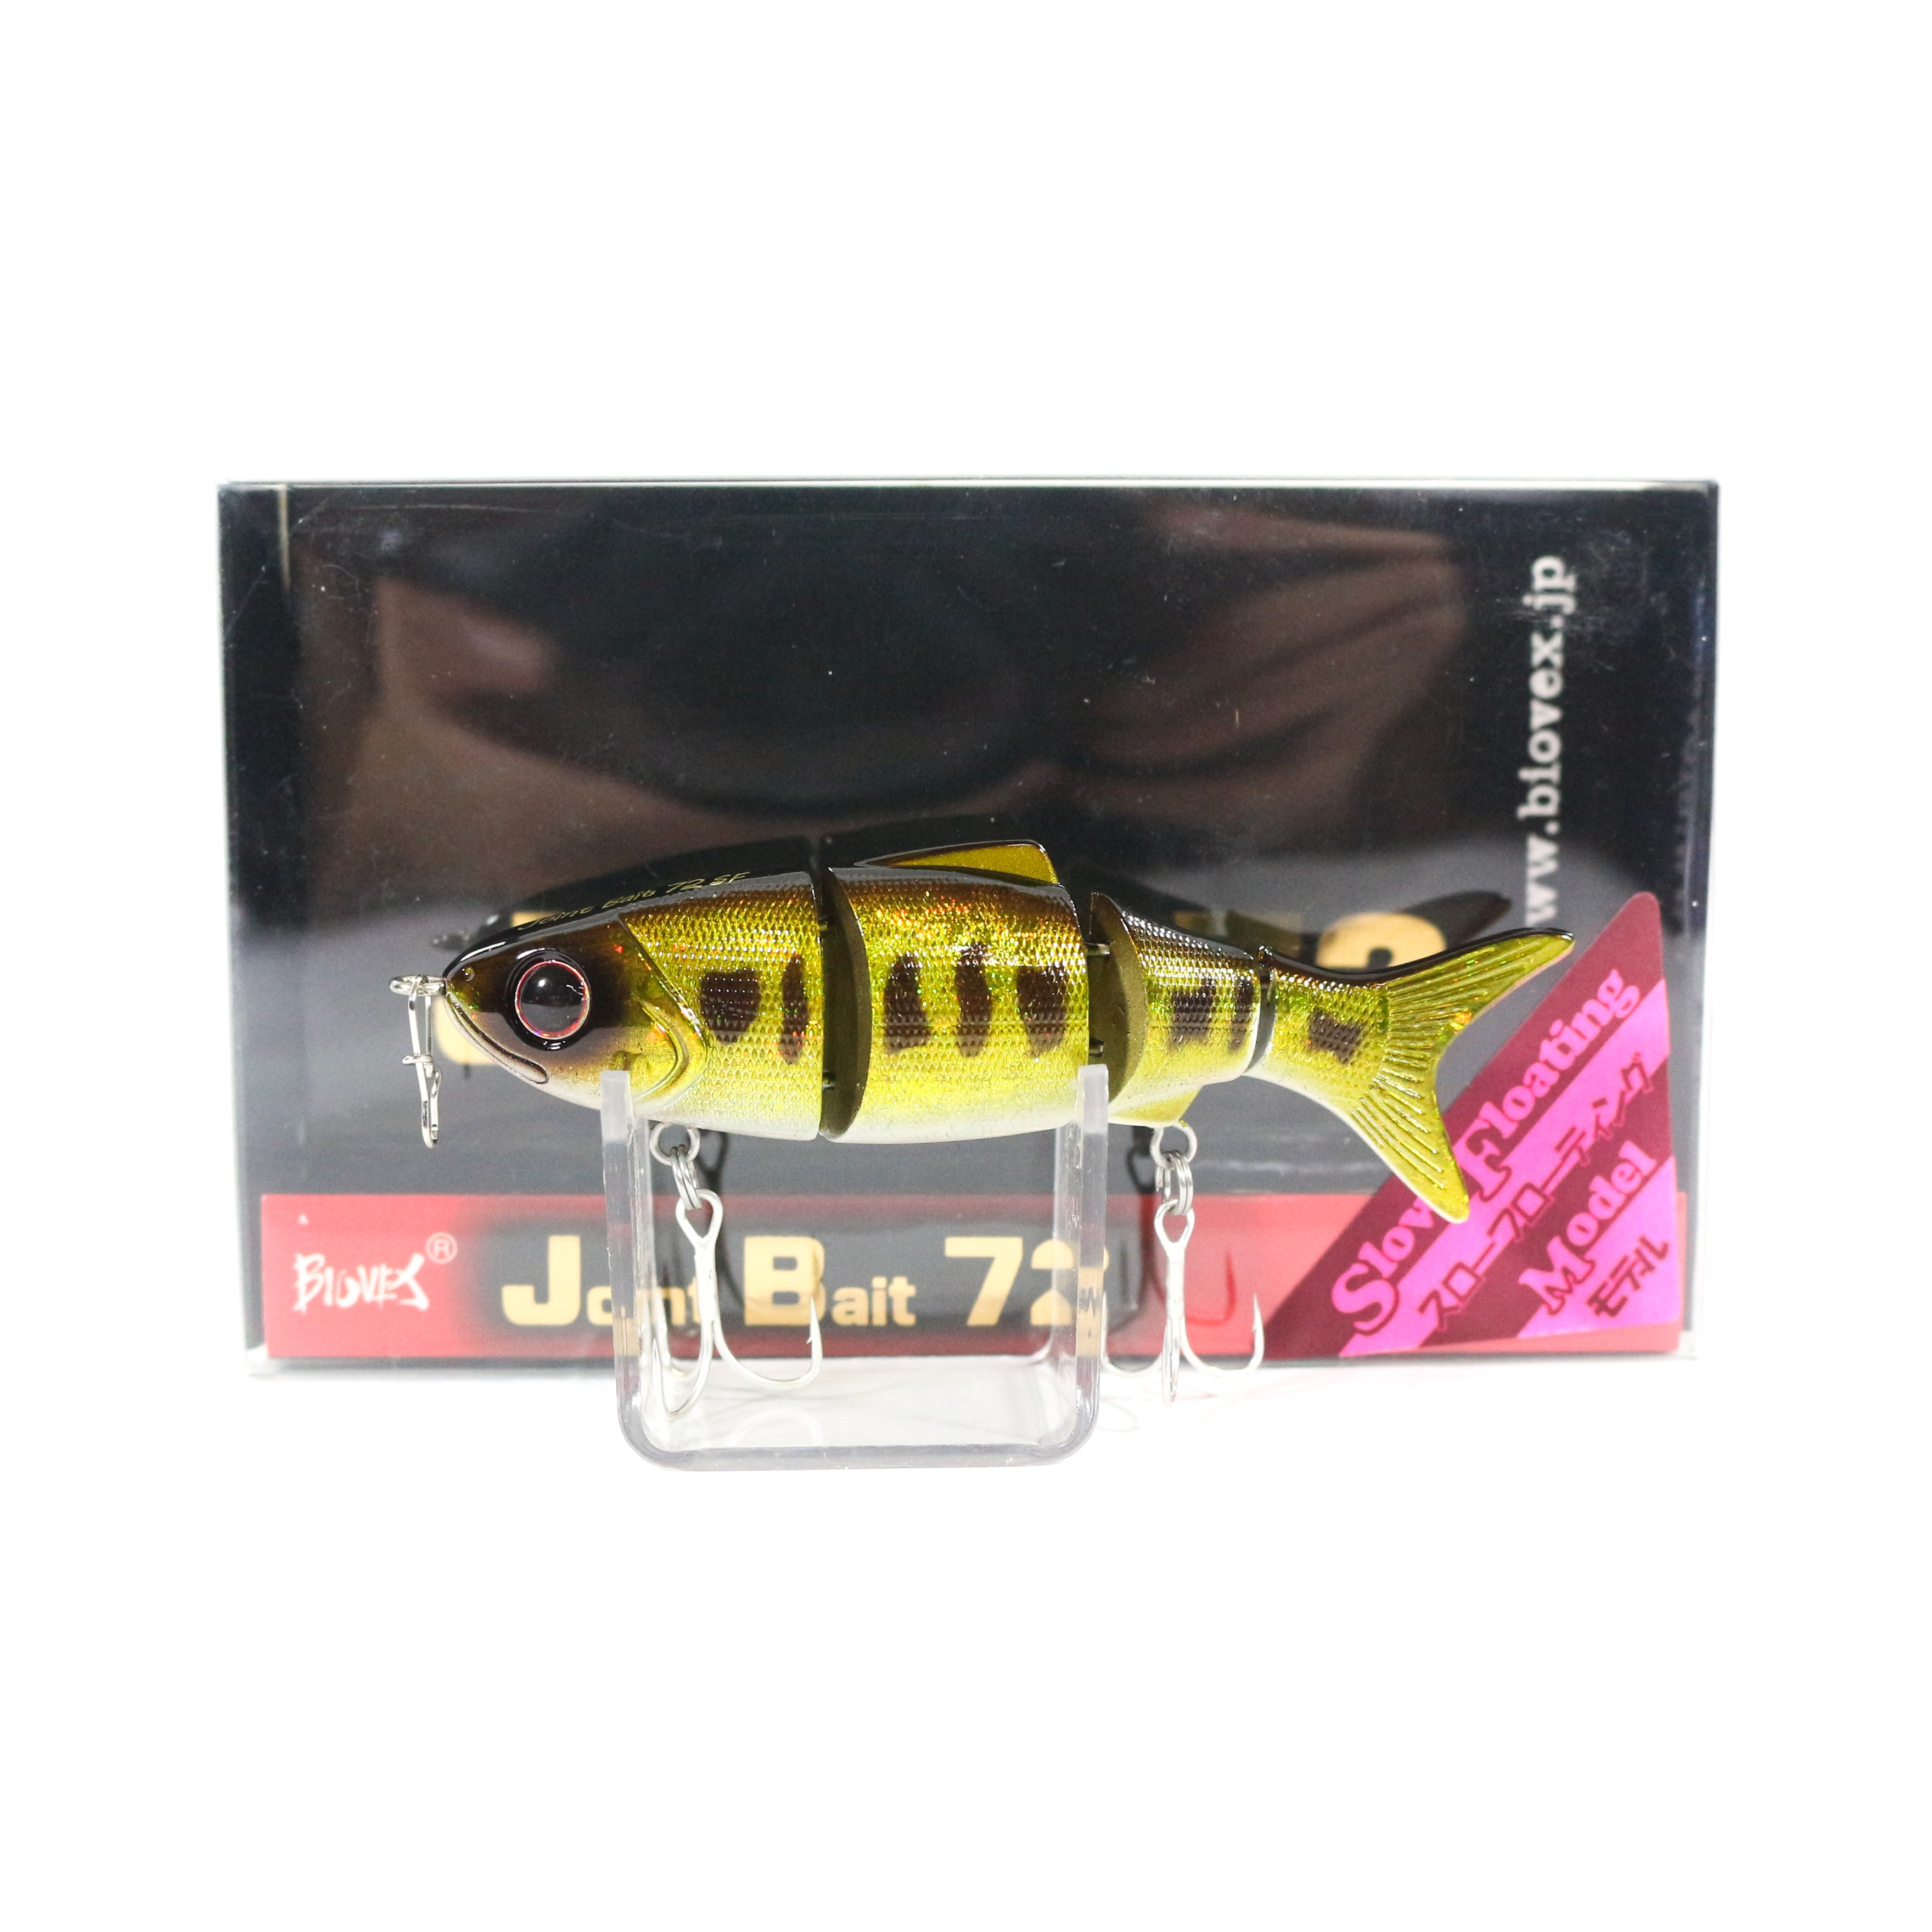 Biovex Joint Bait 72SF Flat Side Slow Floating Lure 30 (3338)